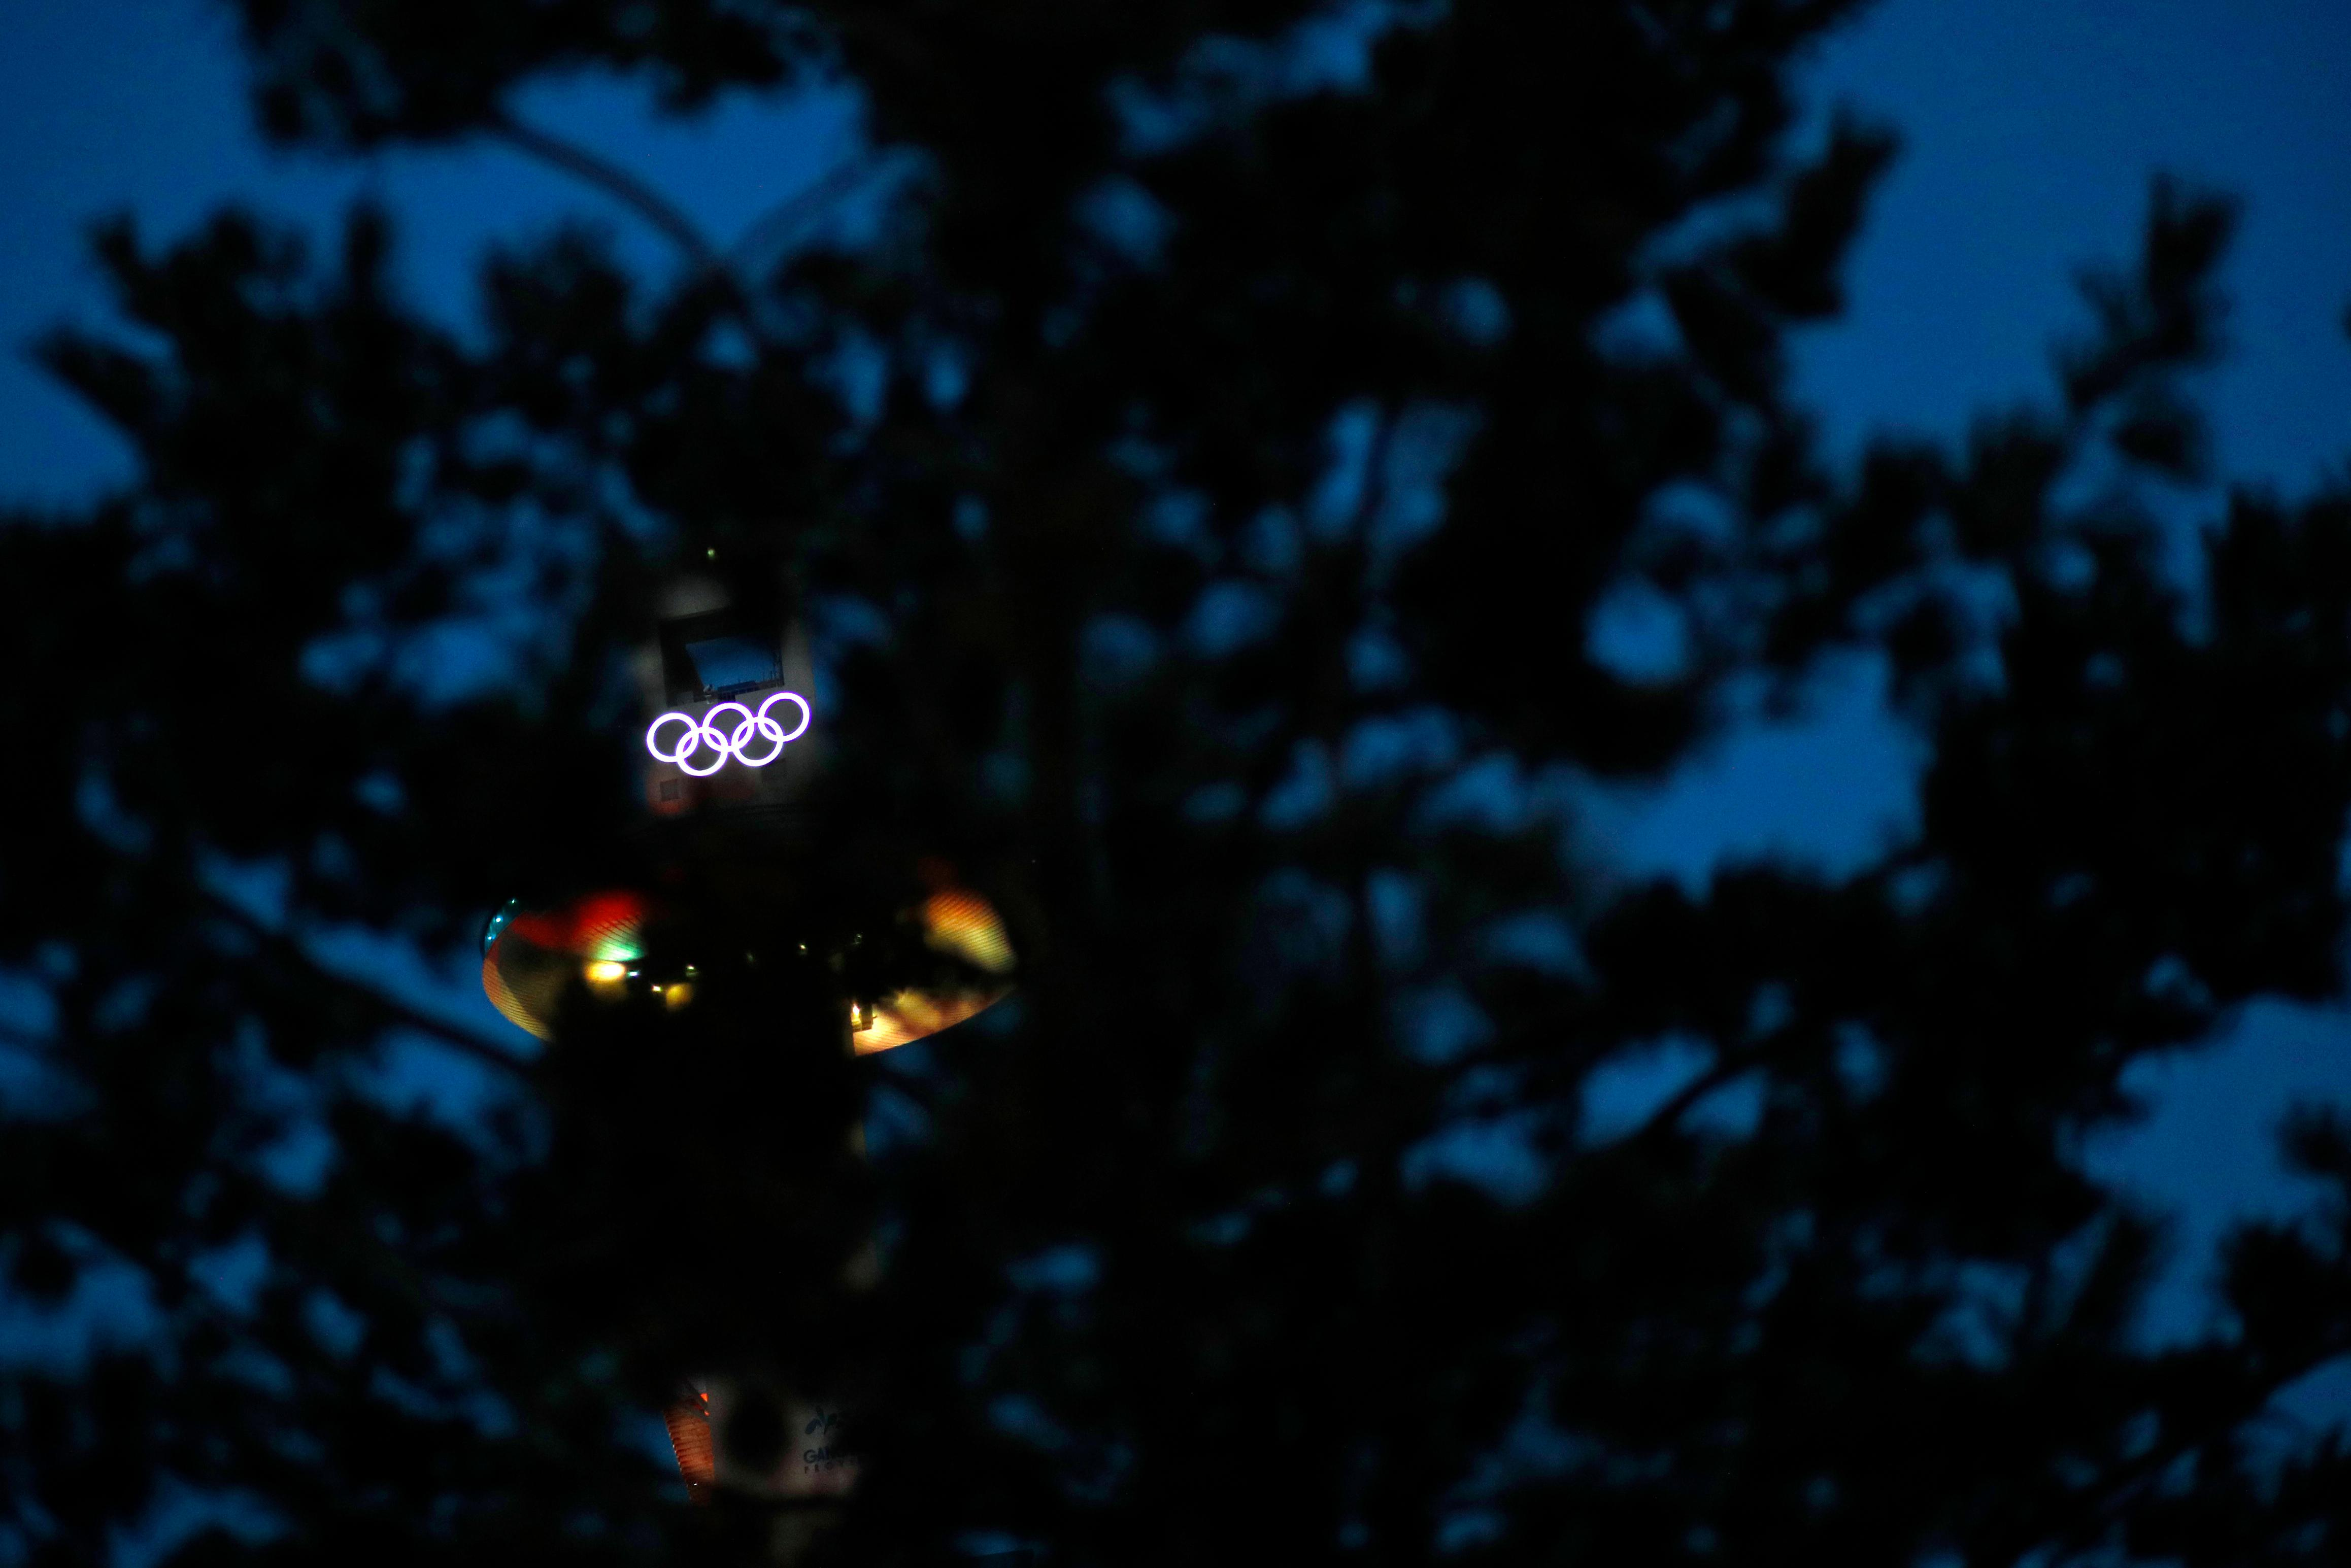 Illuminated Olympic rings atop the Alpensia Ski Jumping Center shine through tree branches at the Alpensia resort prior to the 2018 Winter Olympics in Pyeongchang, South Korea, Friday, Feb. 2, 2018. (AP Photo/Patrick Semansky)